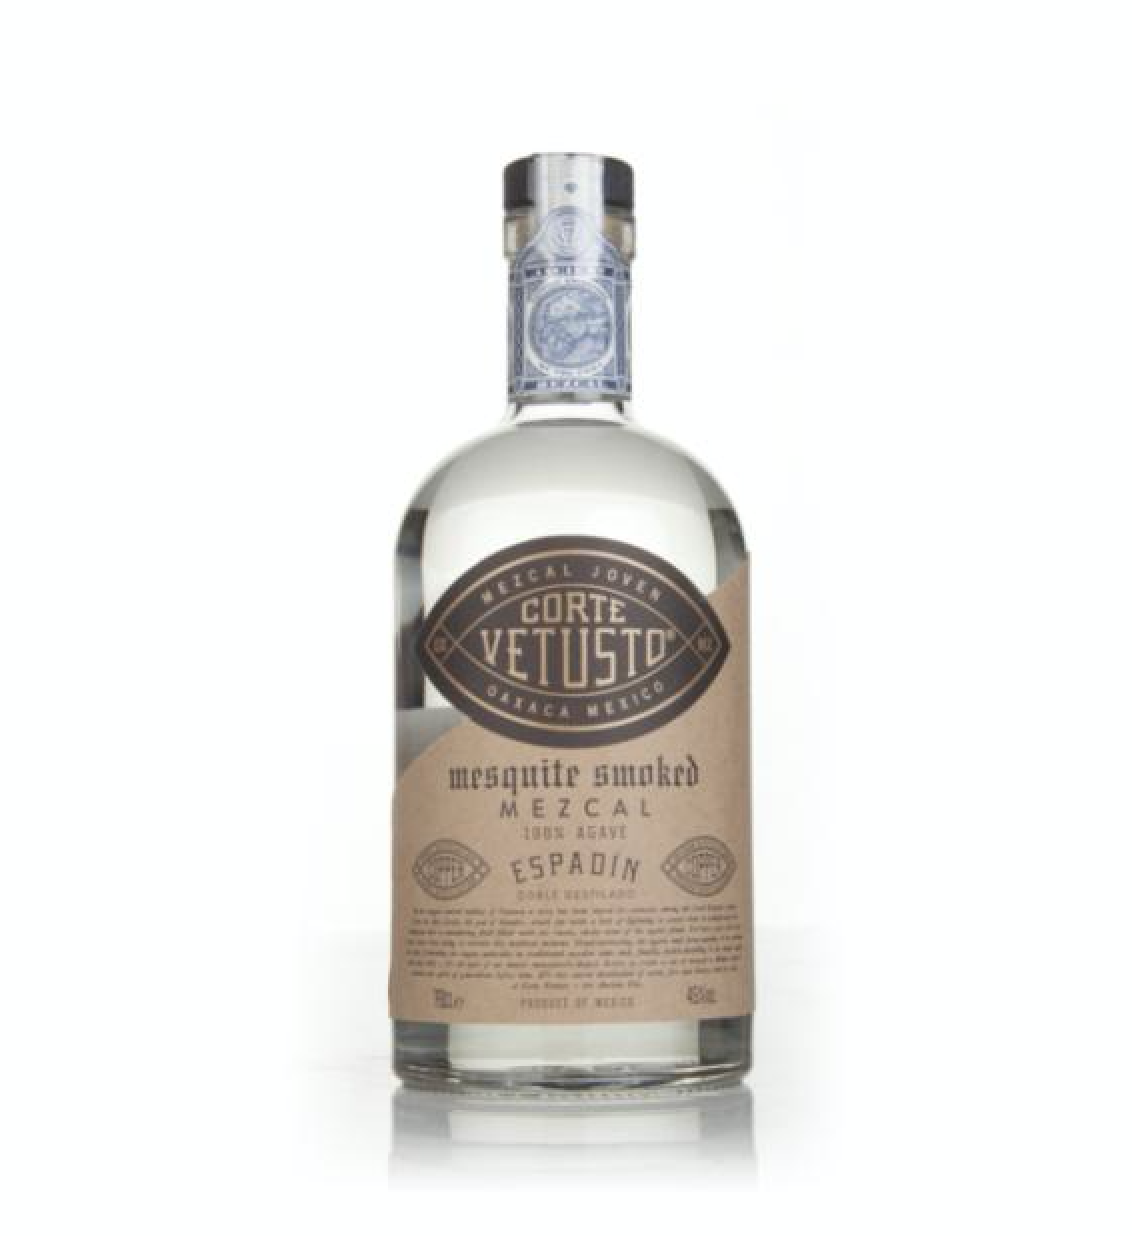 Review: Espadín Mezcal from Corte Vetusto